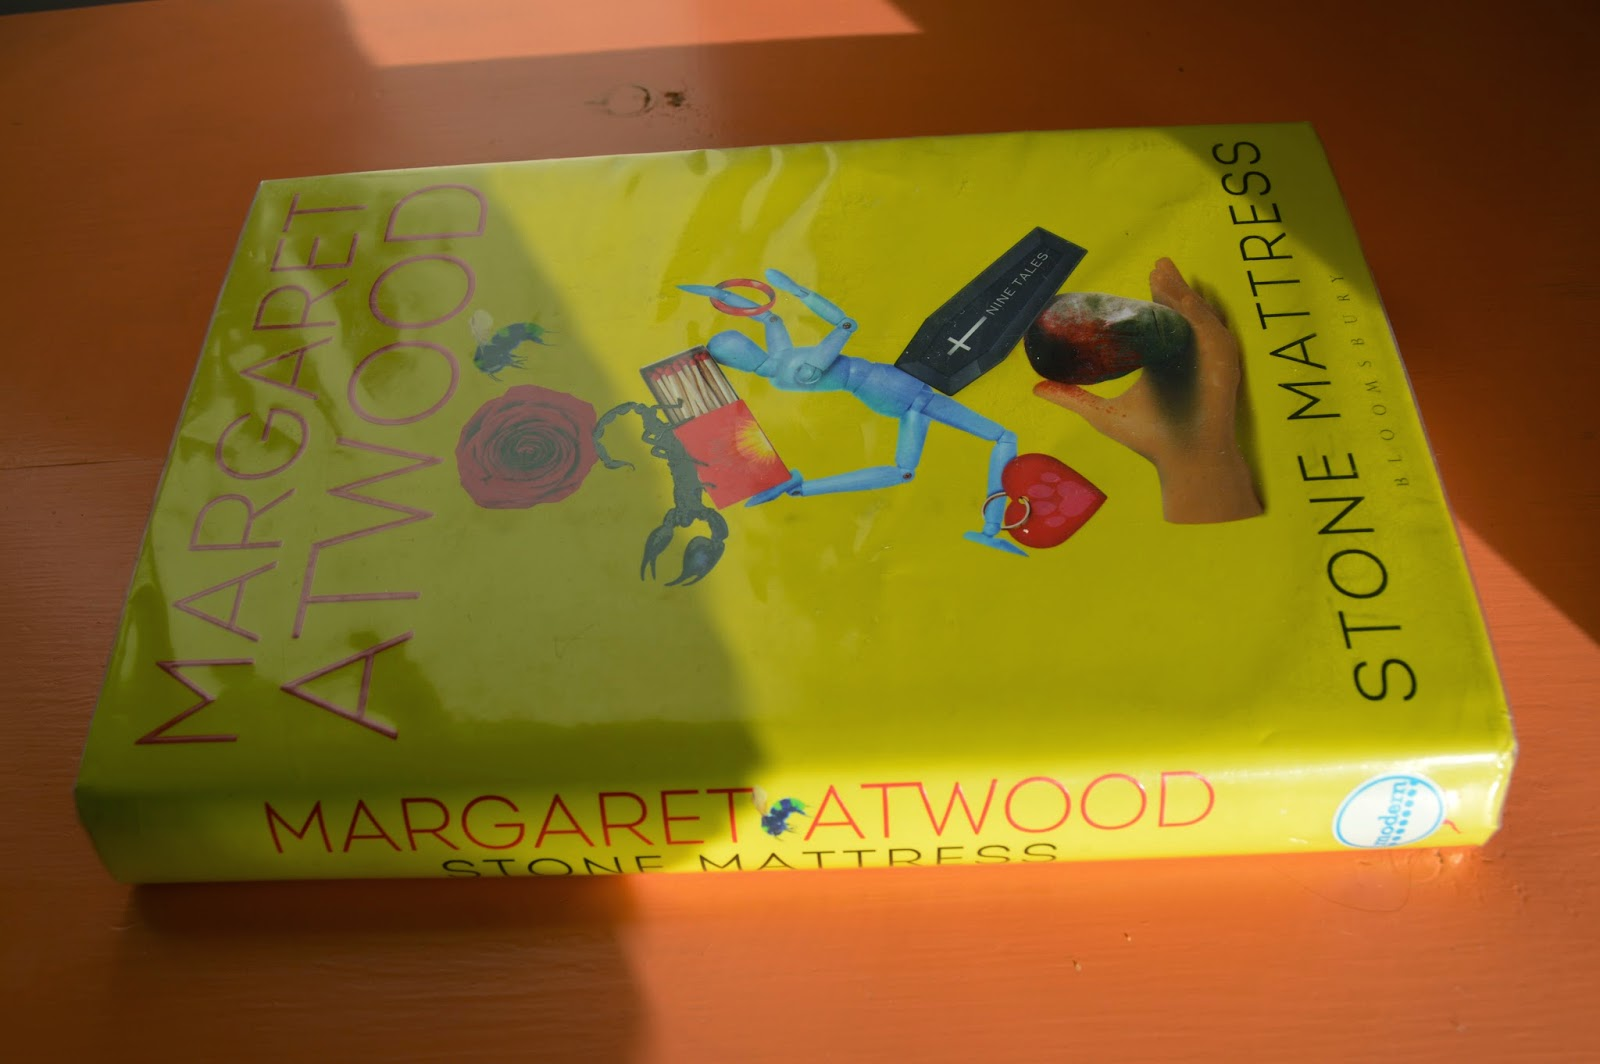 Stone Mattress, Margaret Atwood, collection of short stories, Torch the Dusties, I dream of Zena, hardback, review, book, modern literature,